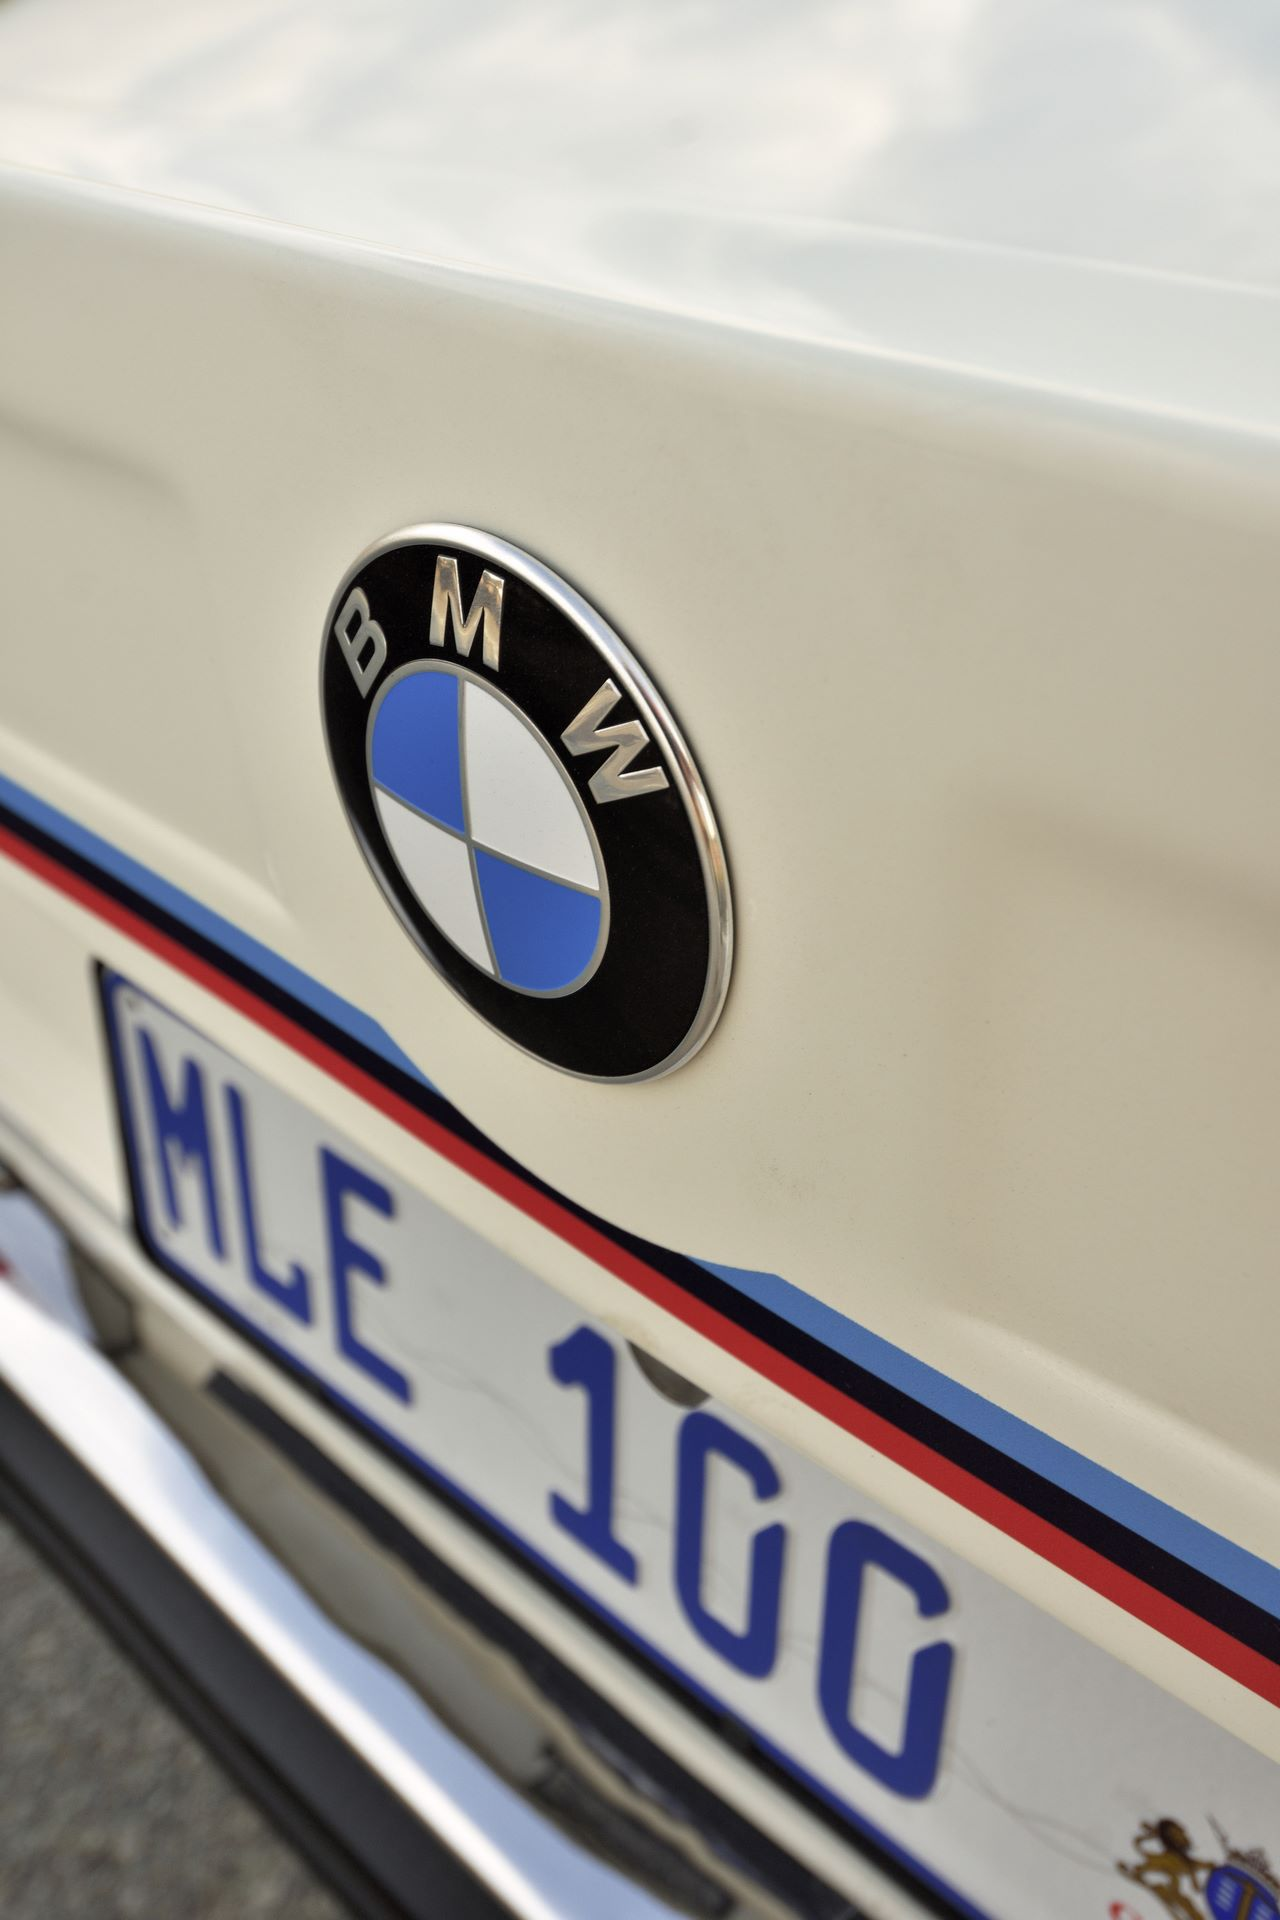 BMW-530-MLE-restoration-in-South-Africa-25